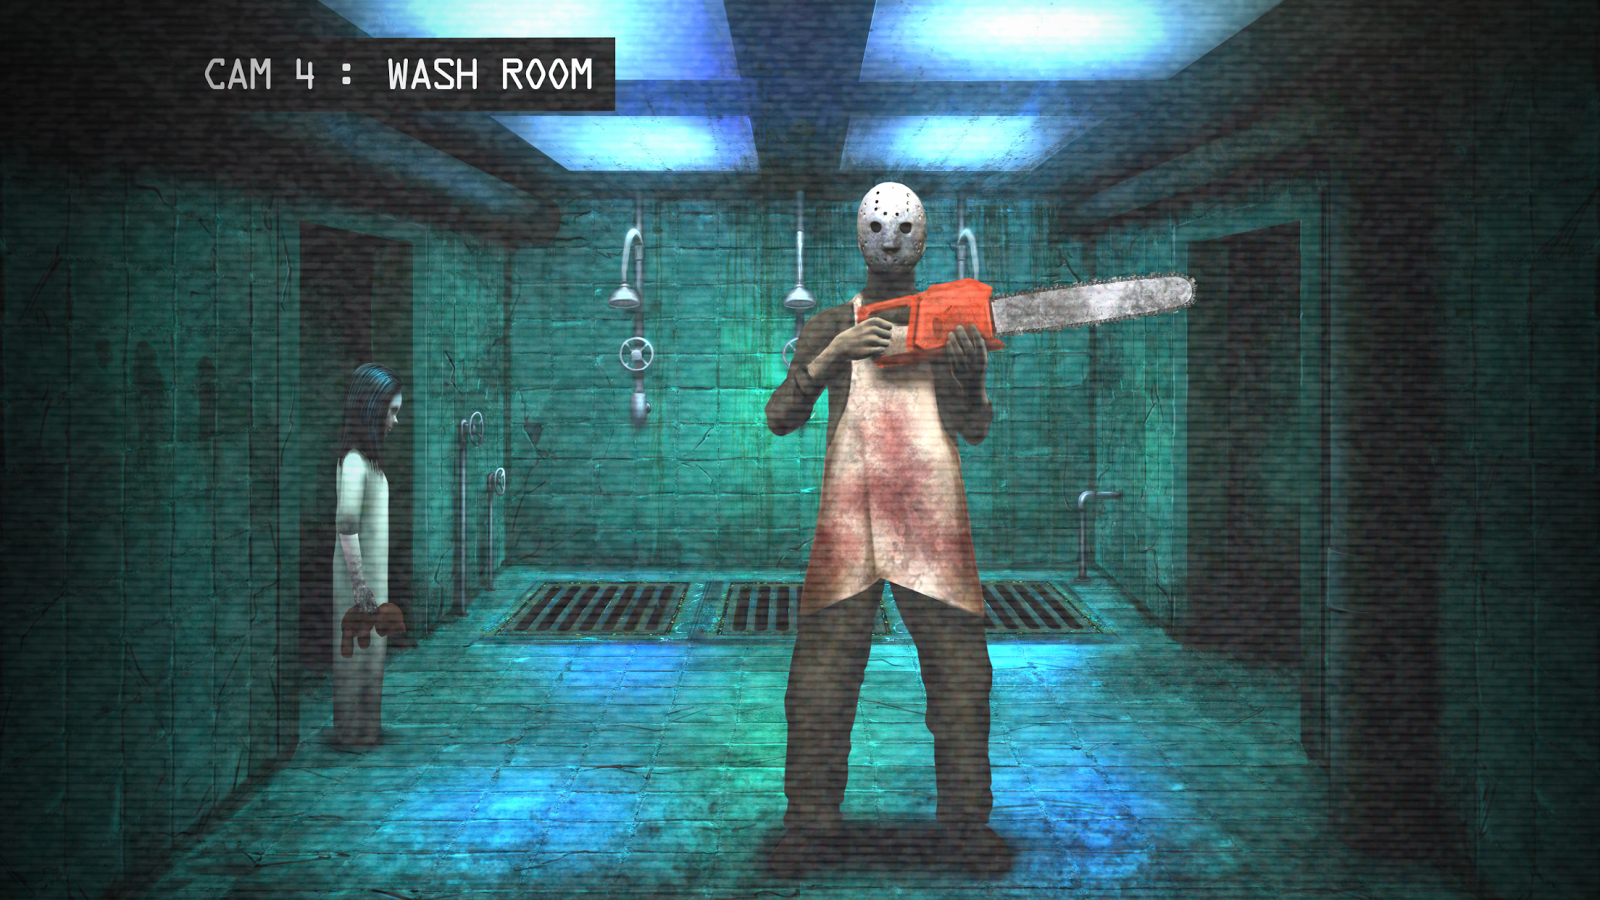 Play Fnaf 3 For Free - Asylum night shift screenshot